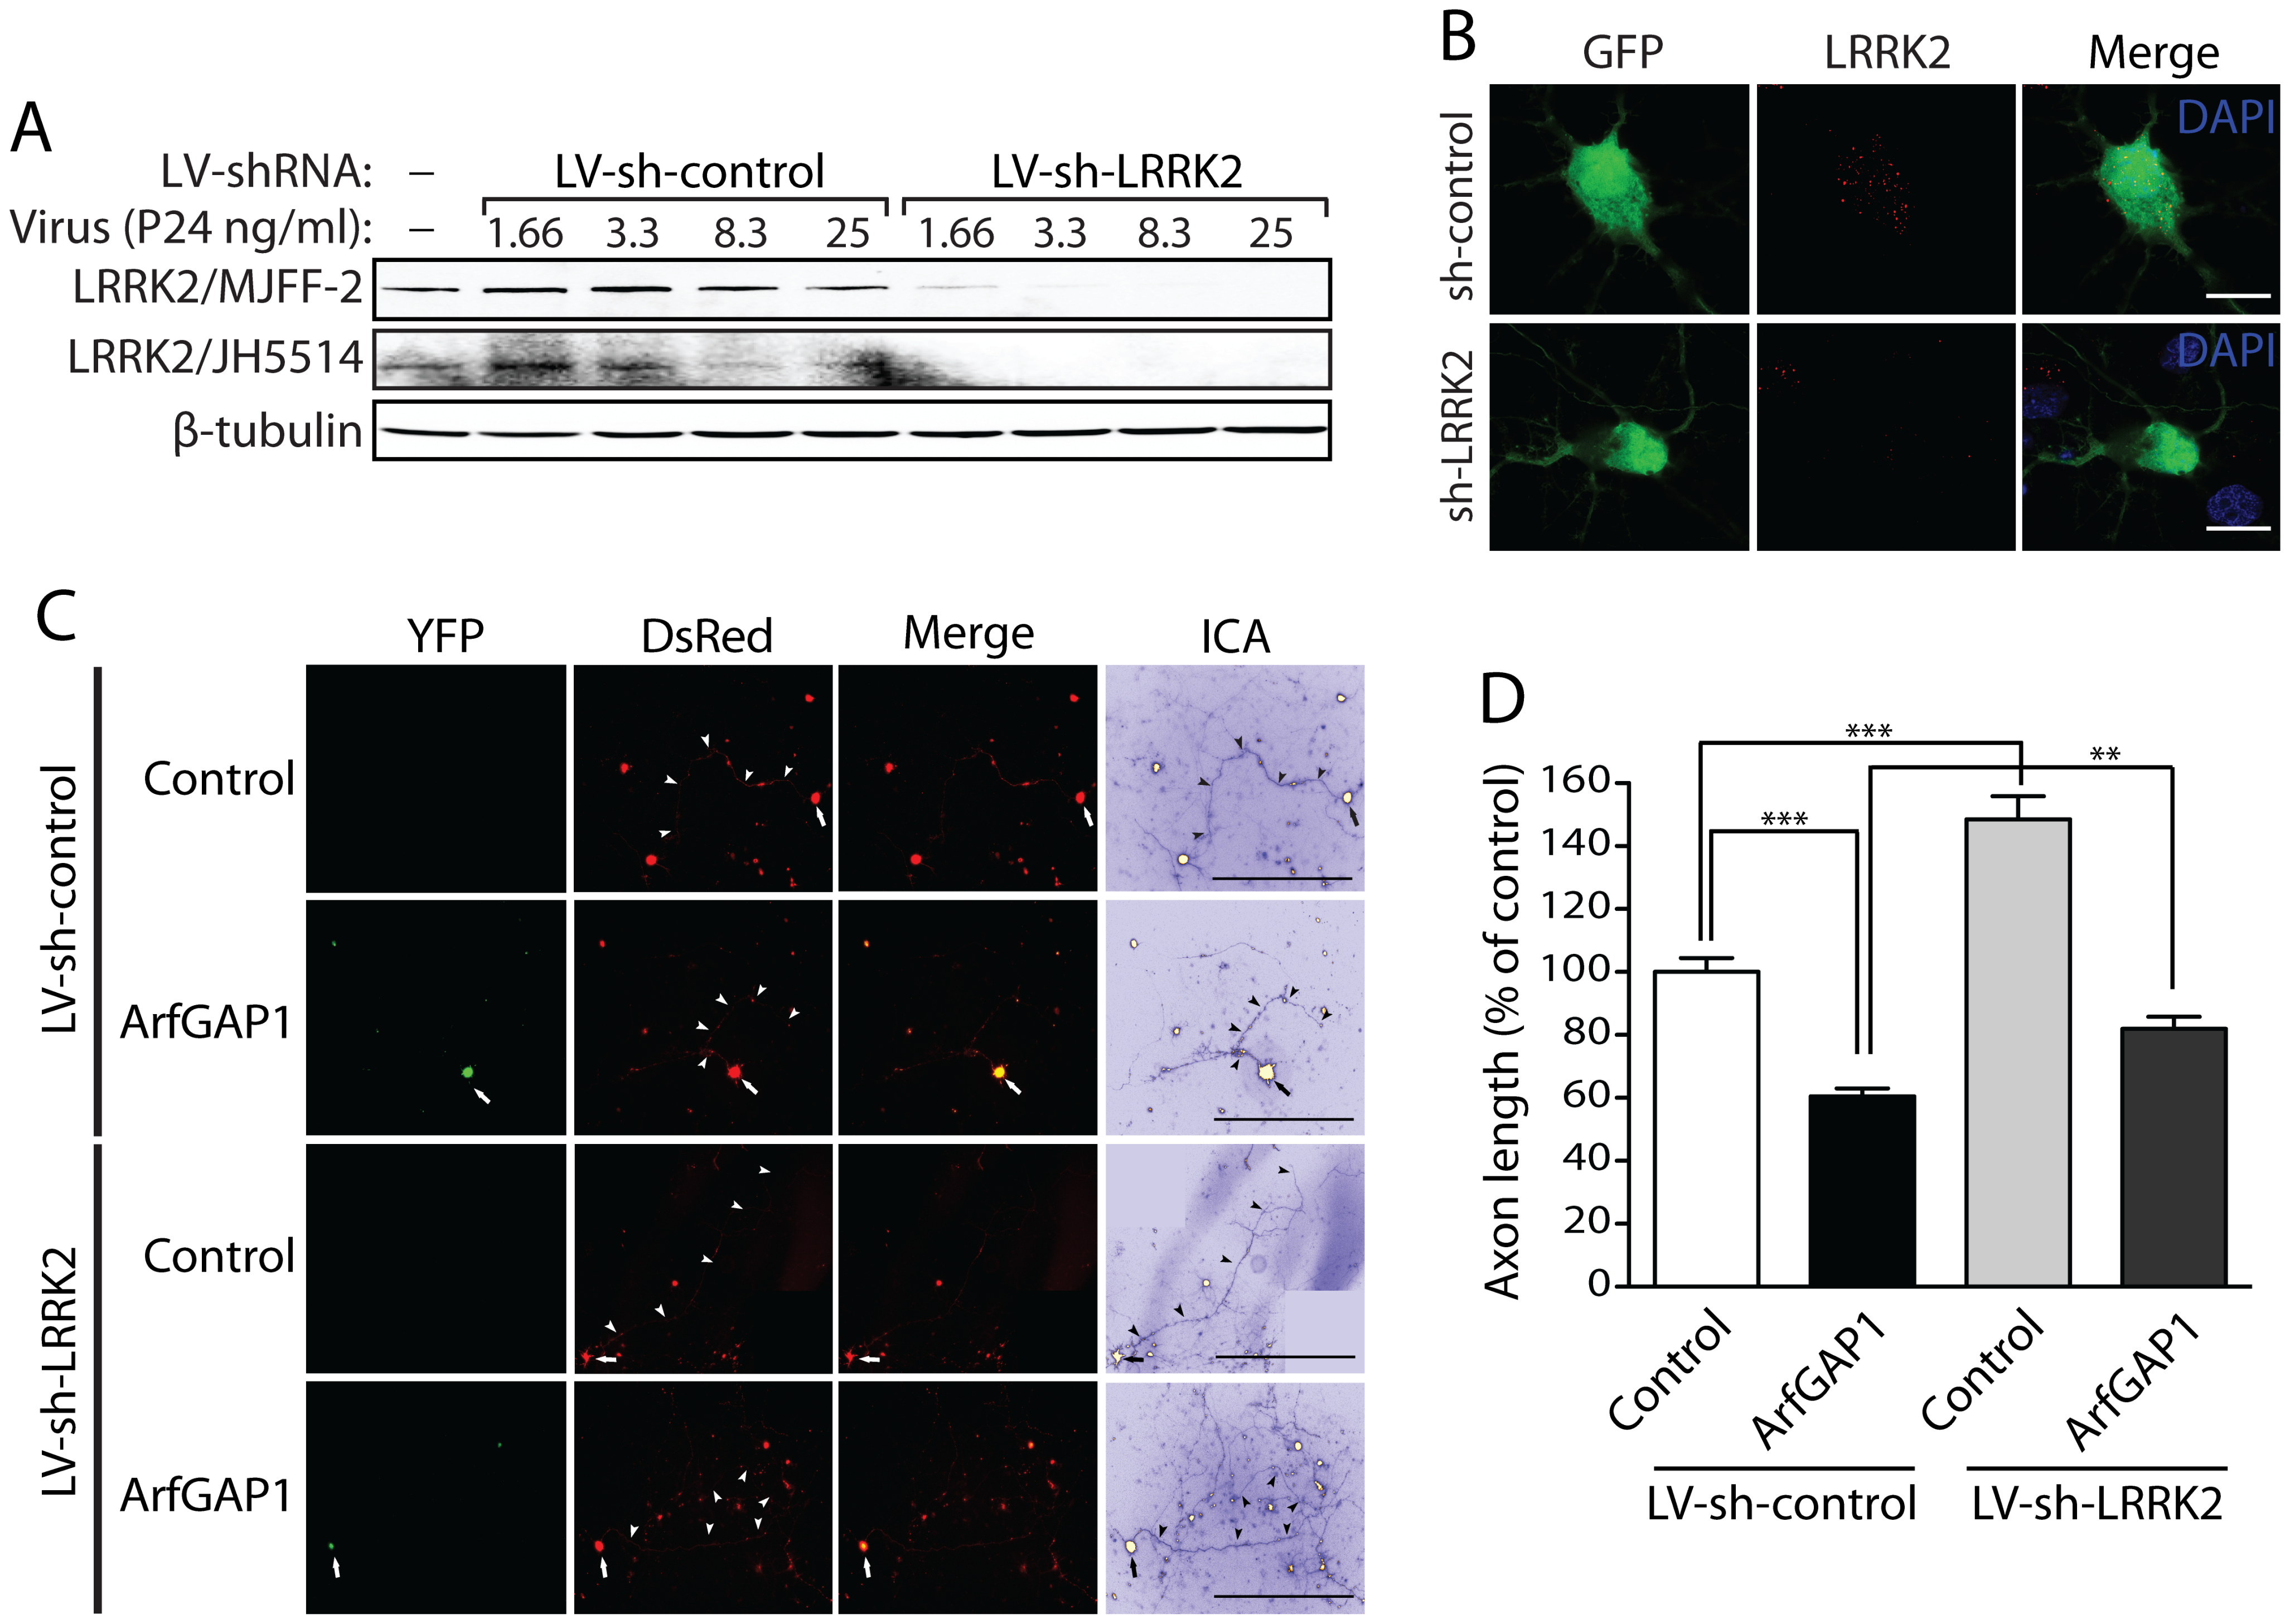 Silencing of LRRK2 expression rescues ArfGAP1-induced neurite shortening.